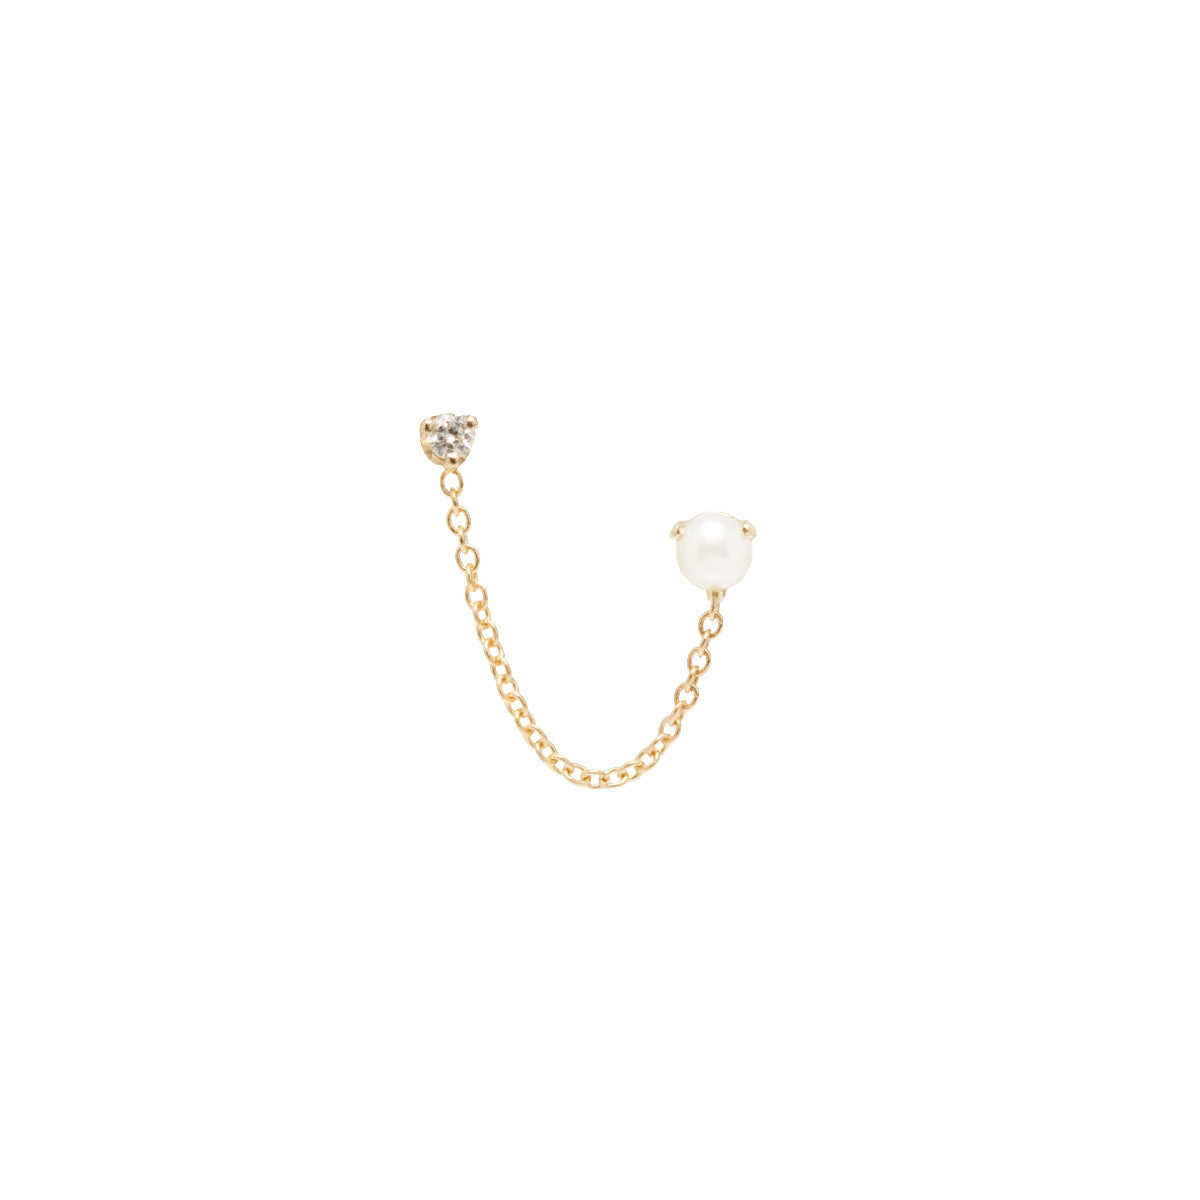 14k pearl and diamond chain double stud earring